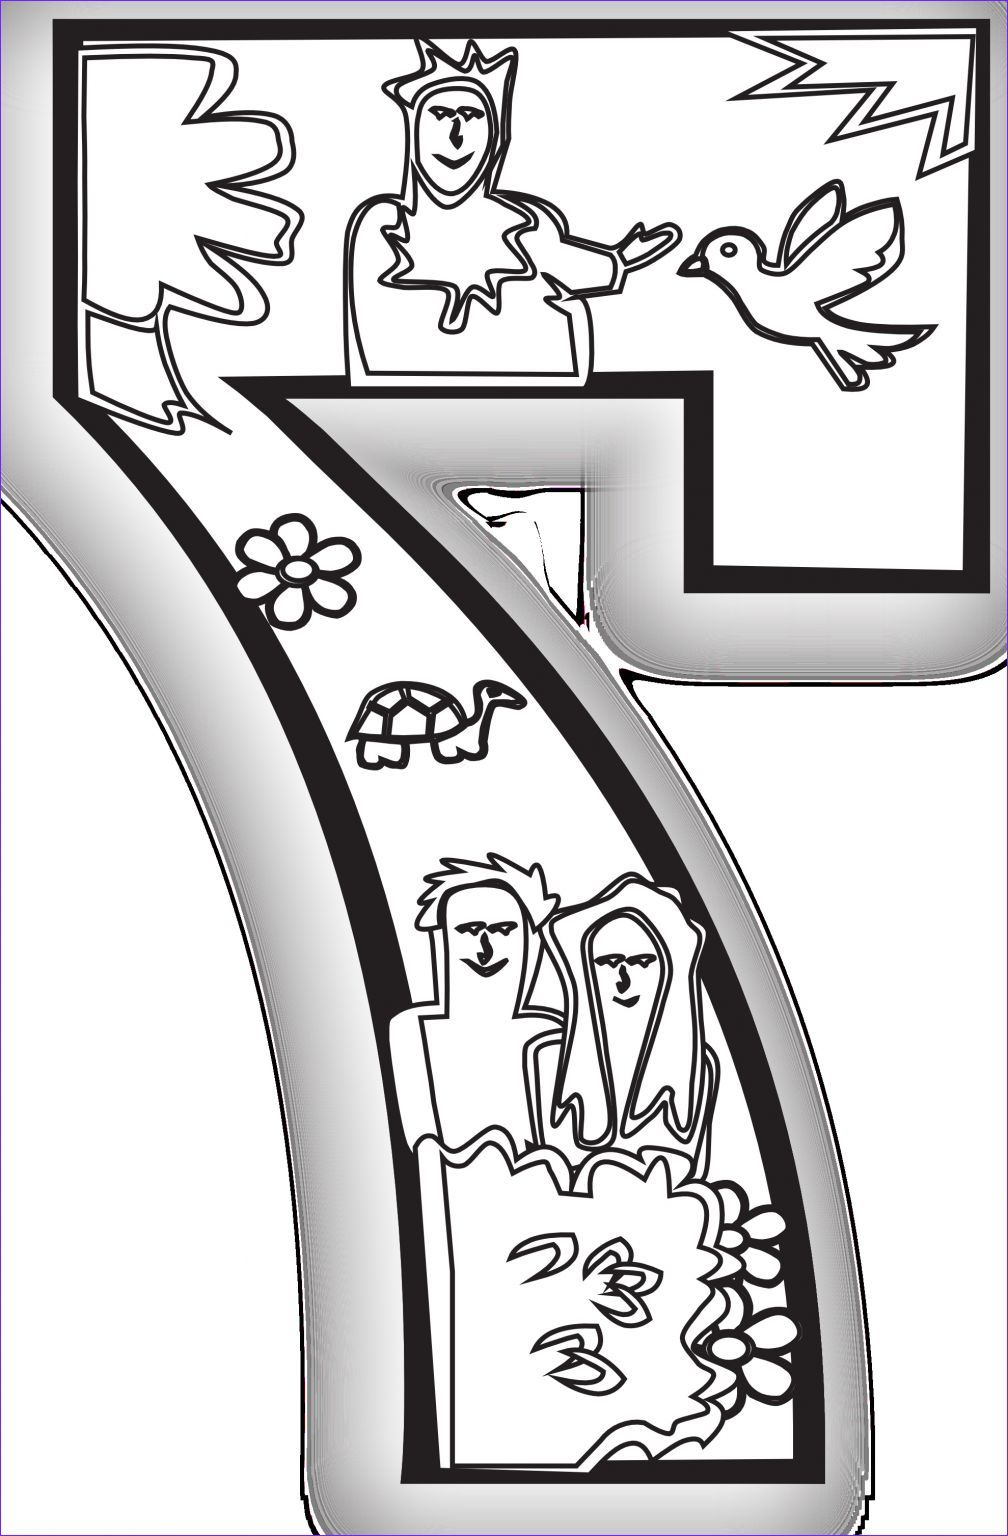 14 Unique Days Of Creation Coloring Pages Photos in 2020